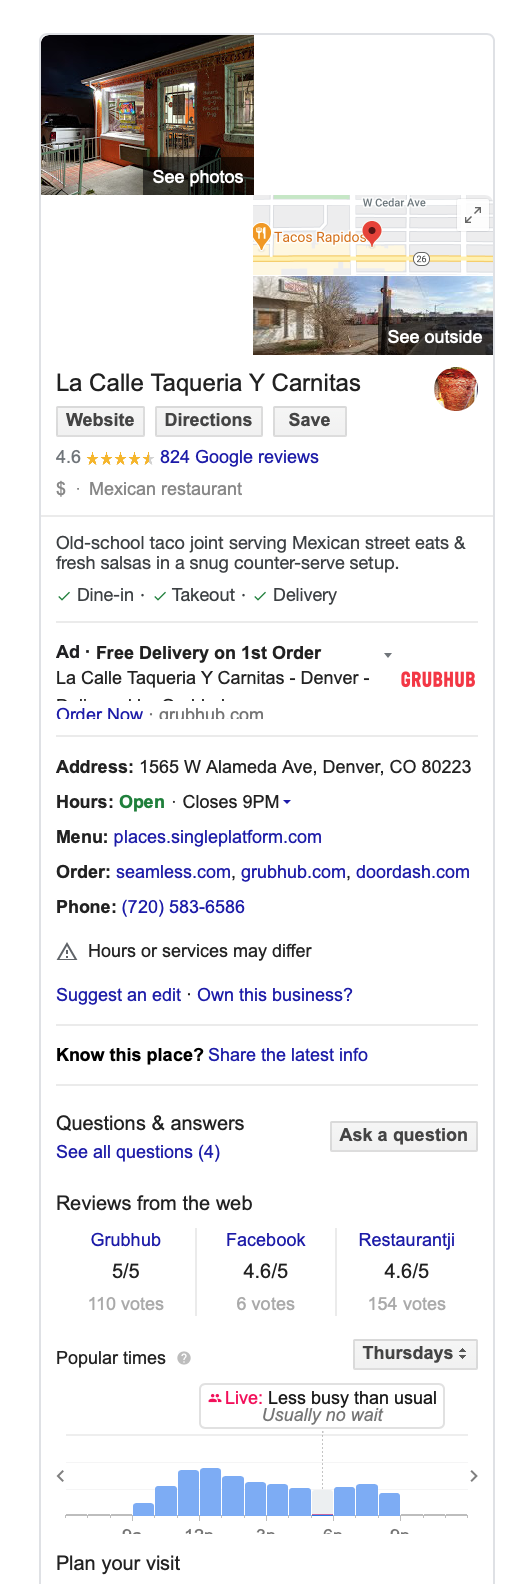 Example of a well-optimized Google My Business listing for local SEO